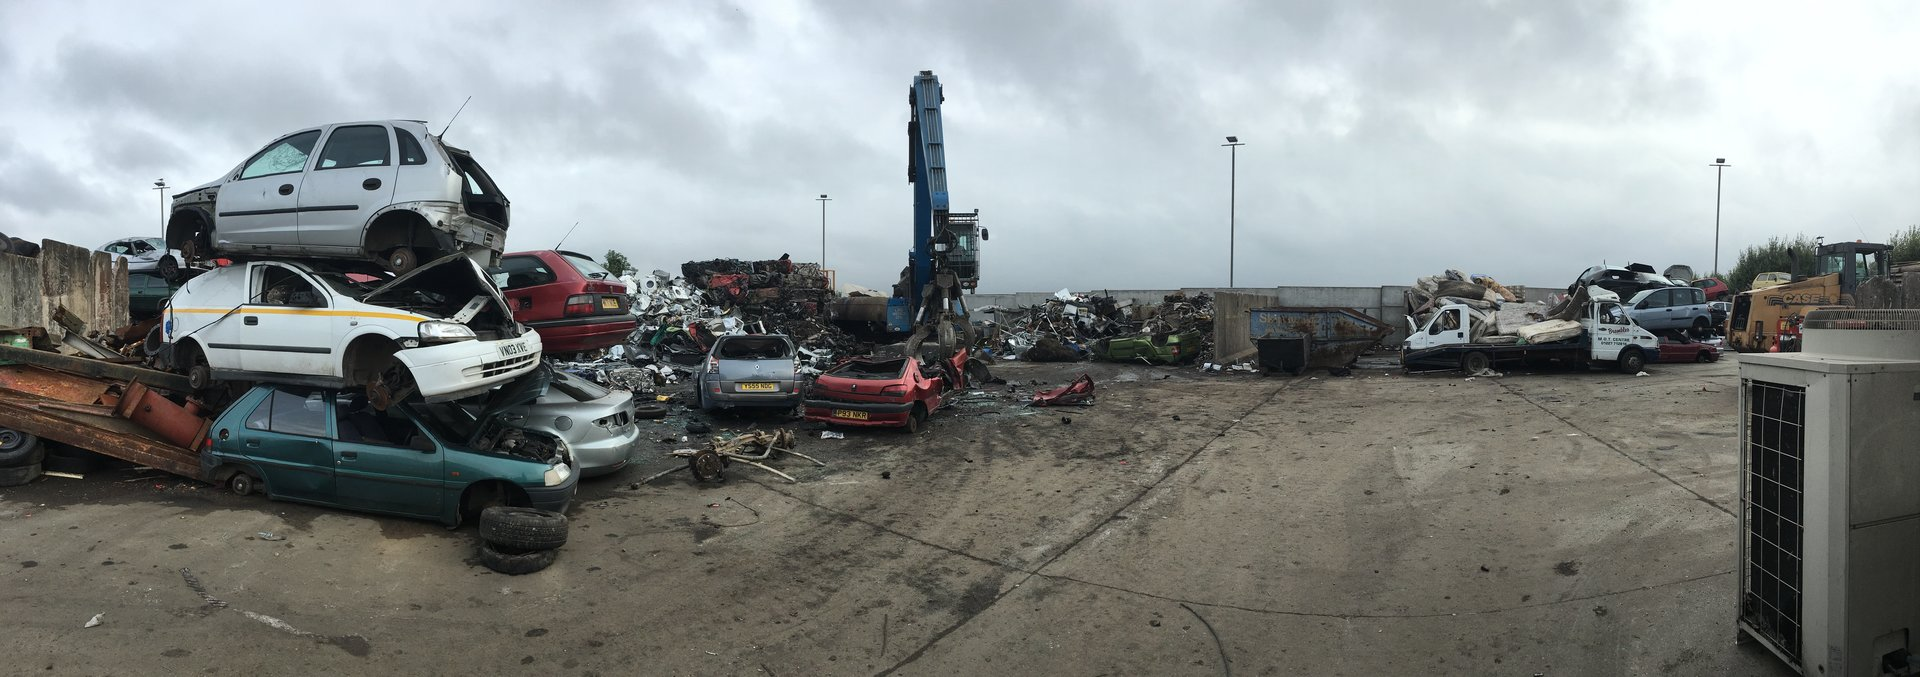 Reliable scrap car recycling services in Kent